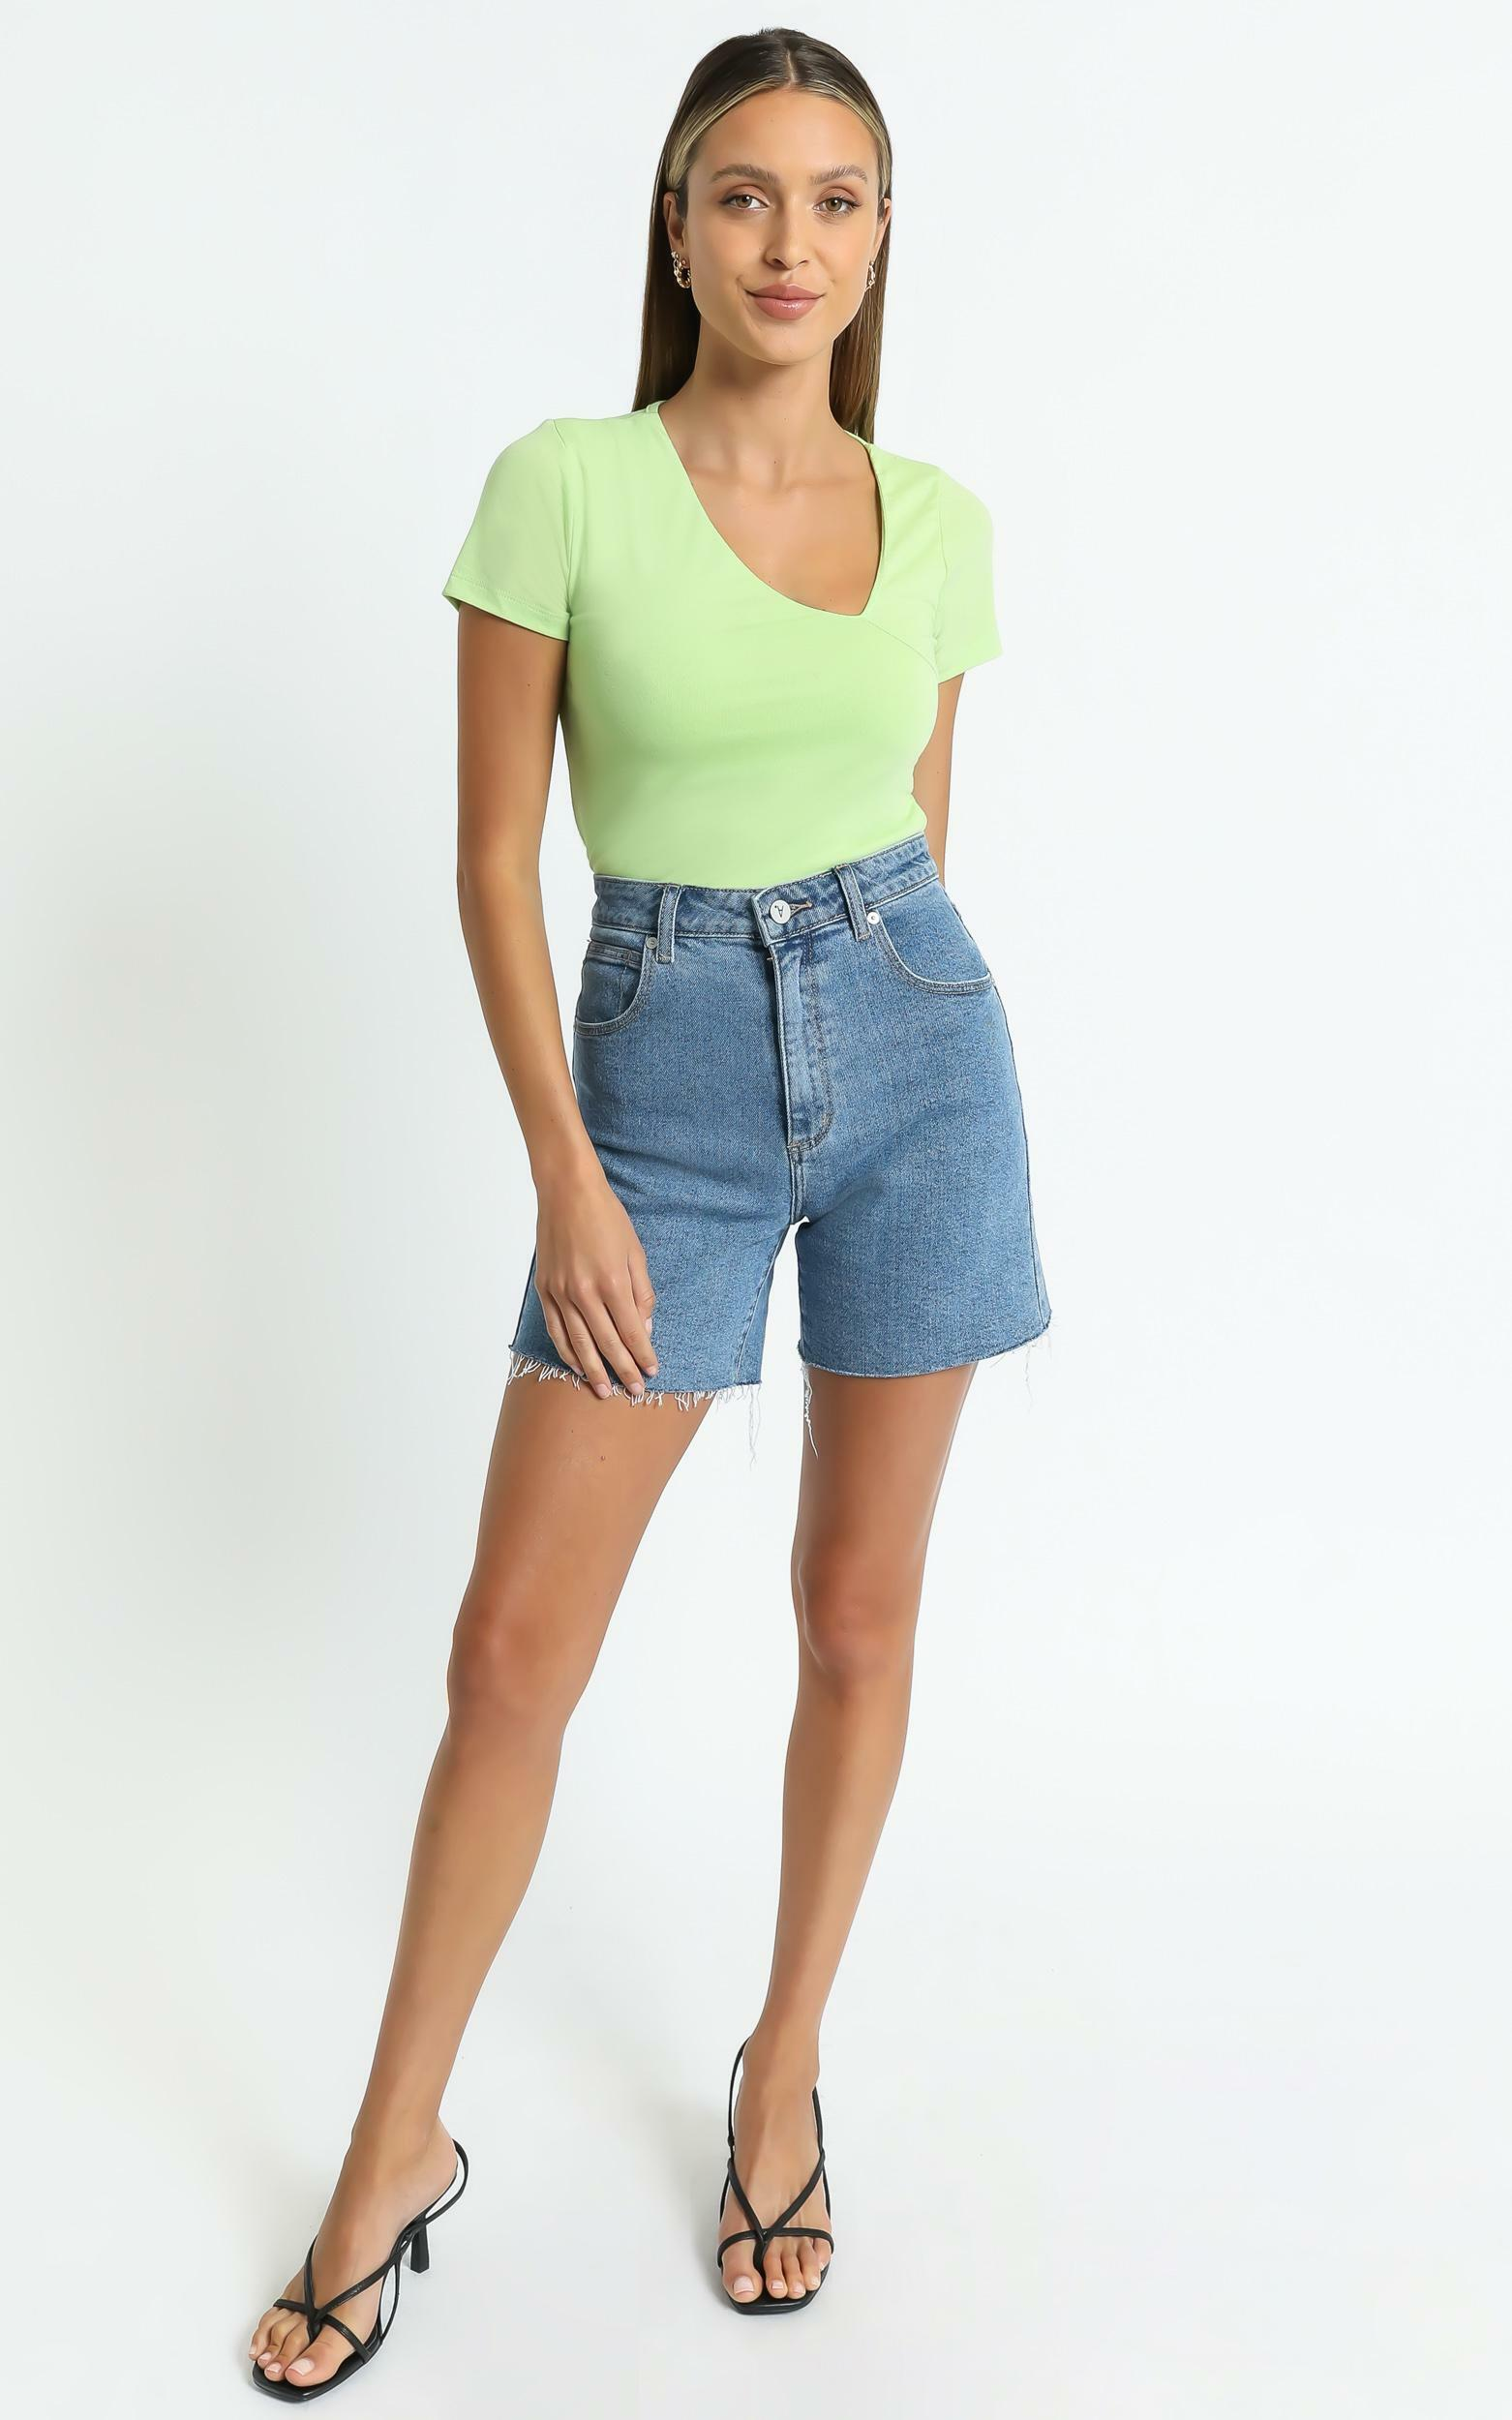 Jordy Tee in Green - 6 (XS), GRN1, hi-res image number null